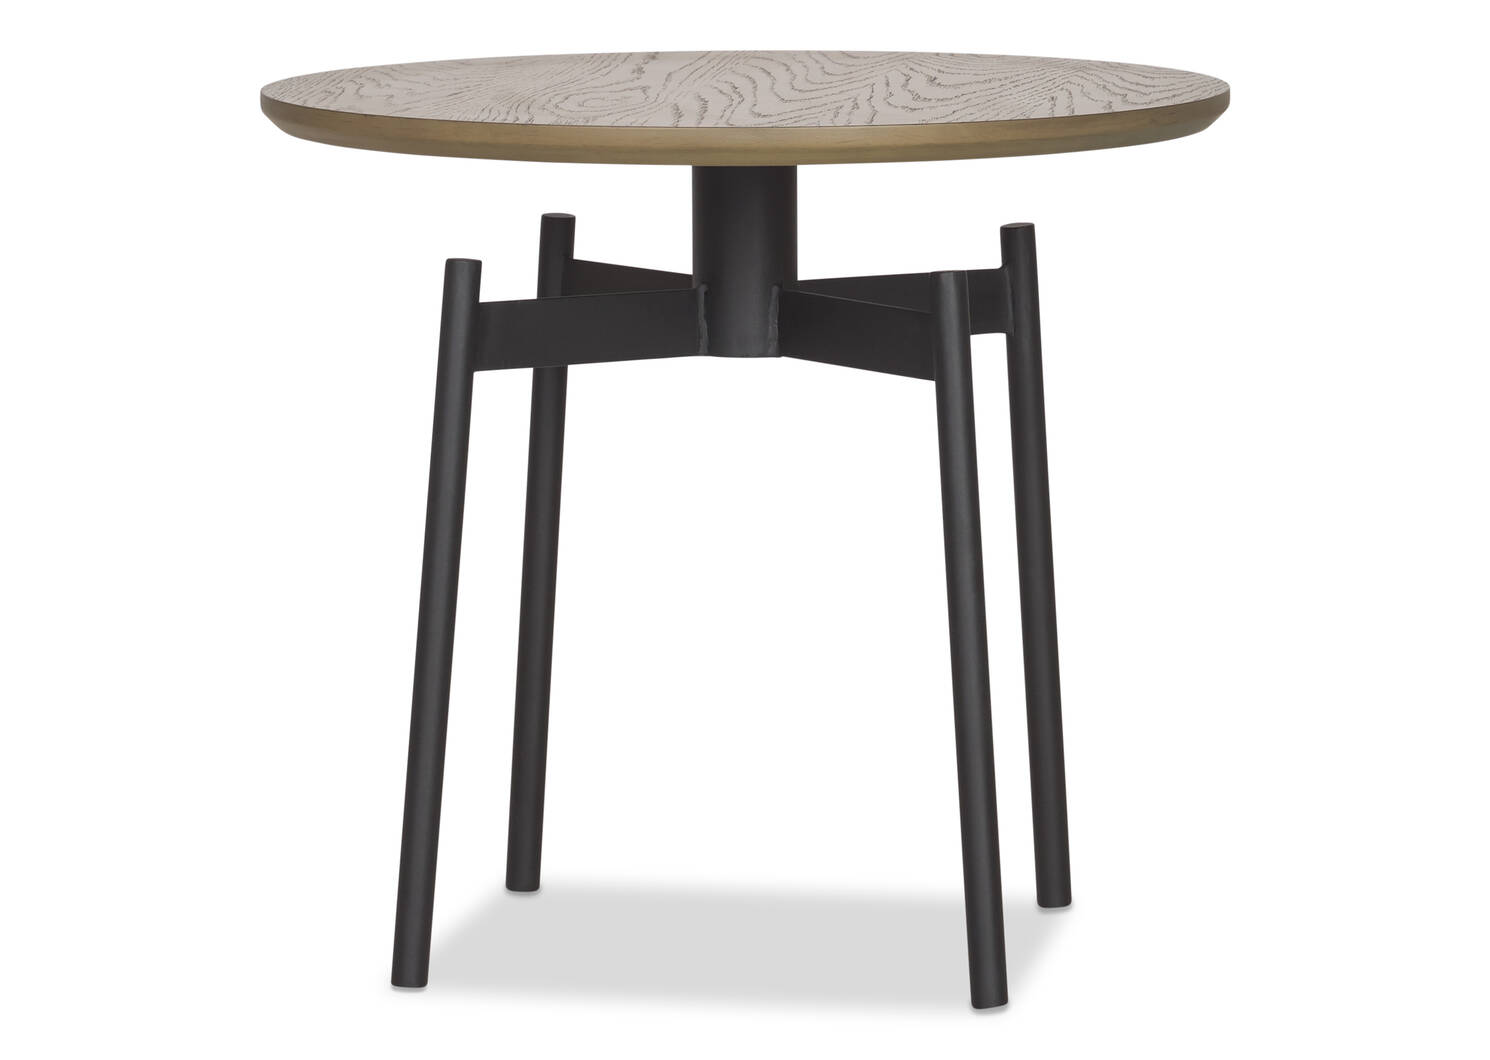 Melville Round Side Table -Raven Umber